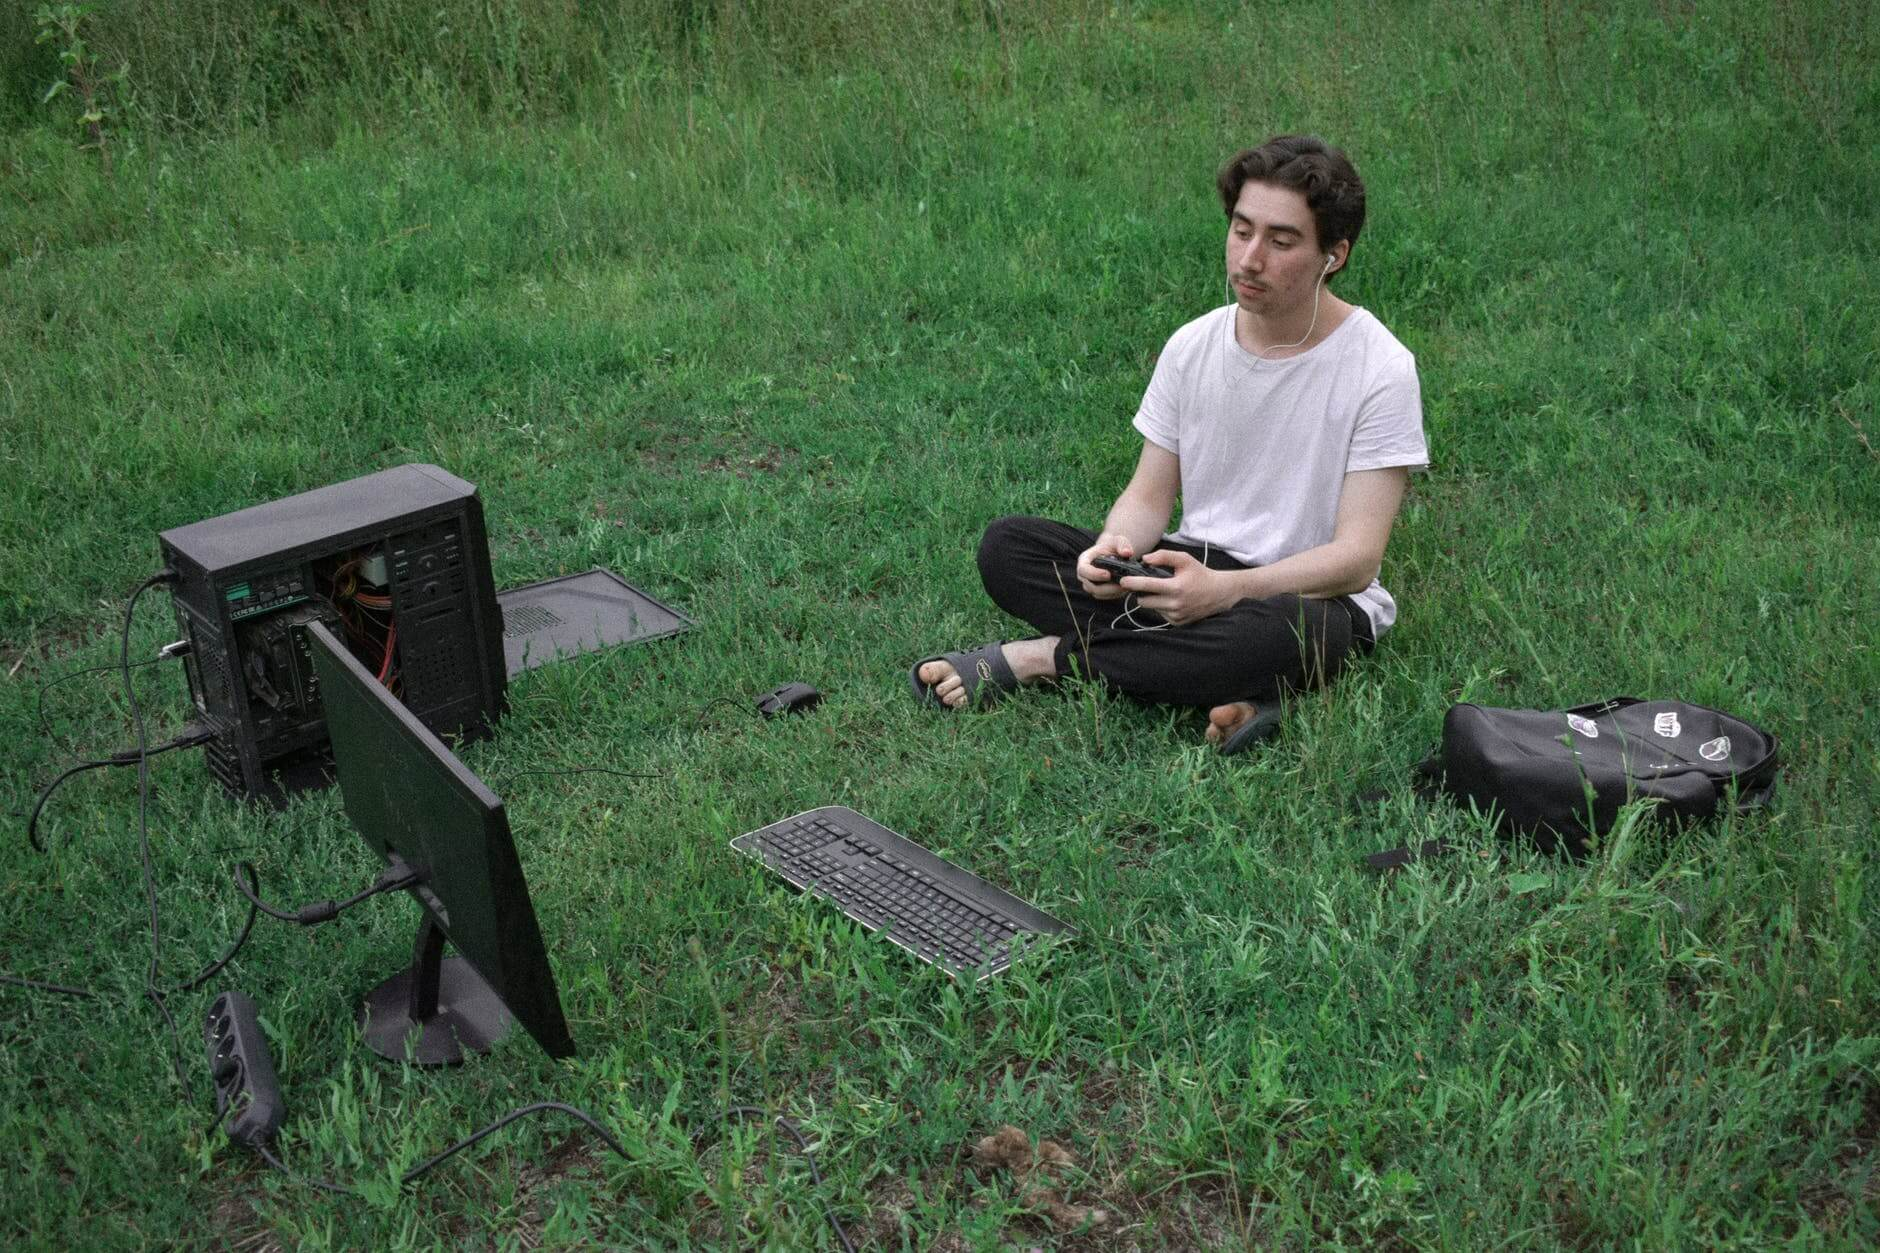 A man sitting on the grass connected to his computer and playing games. Satire.